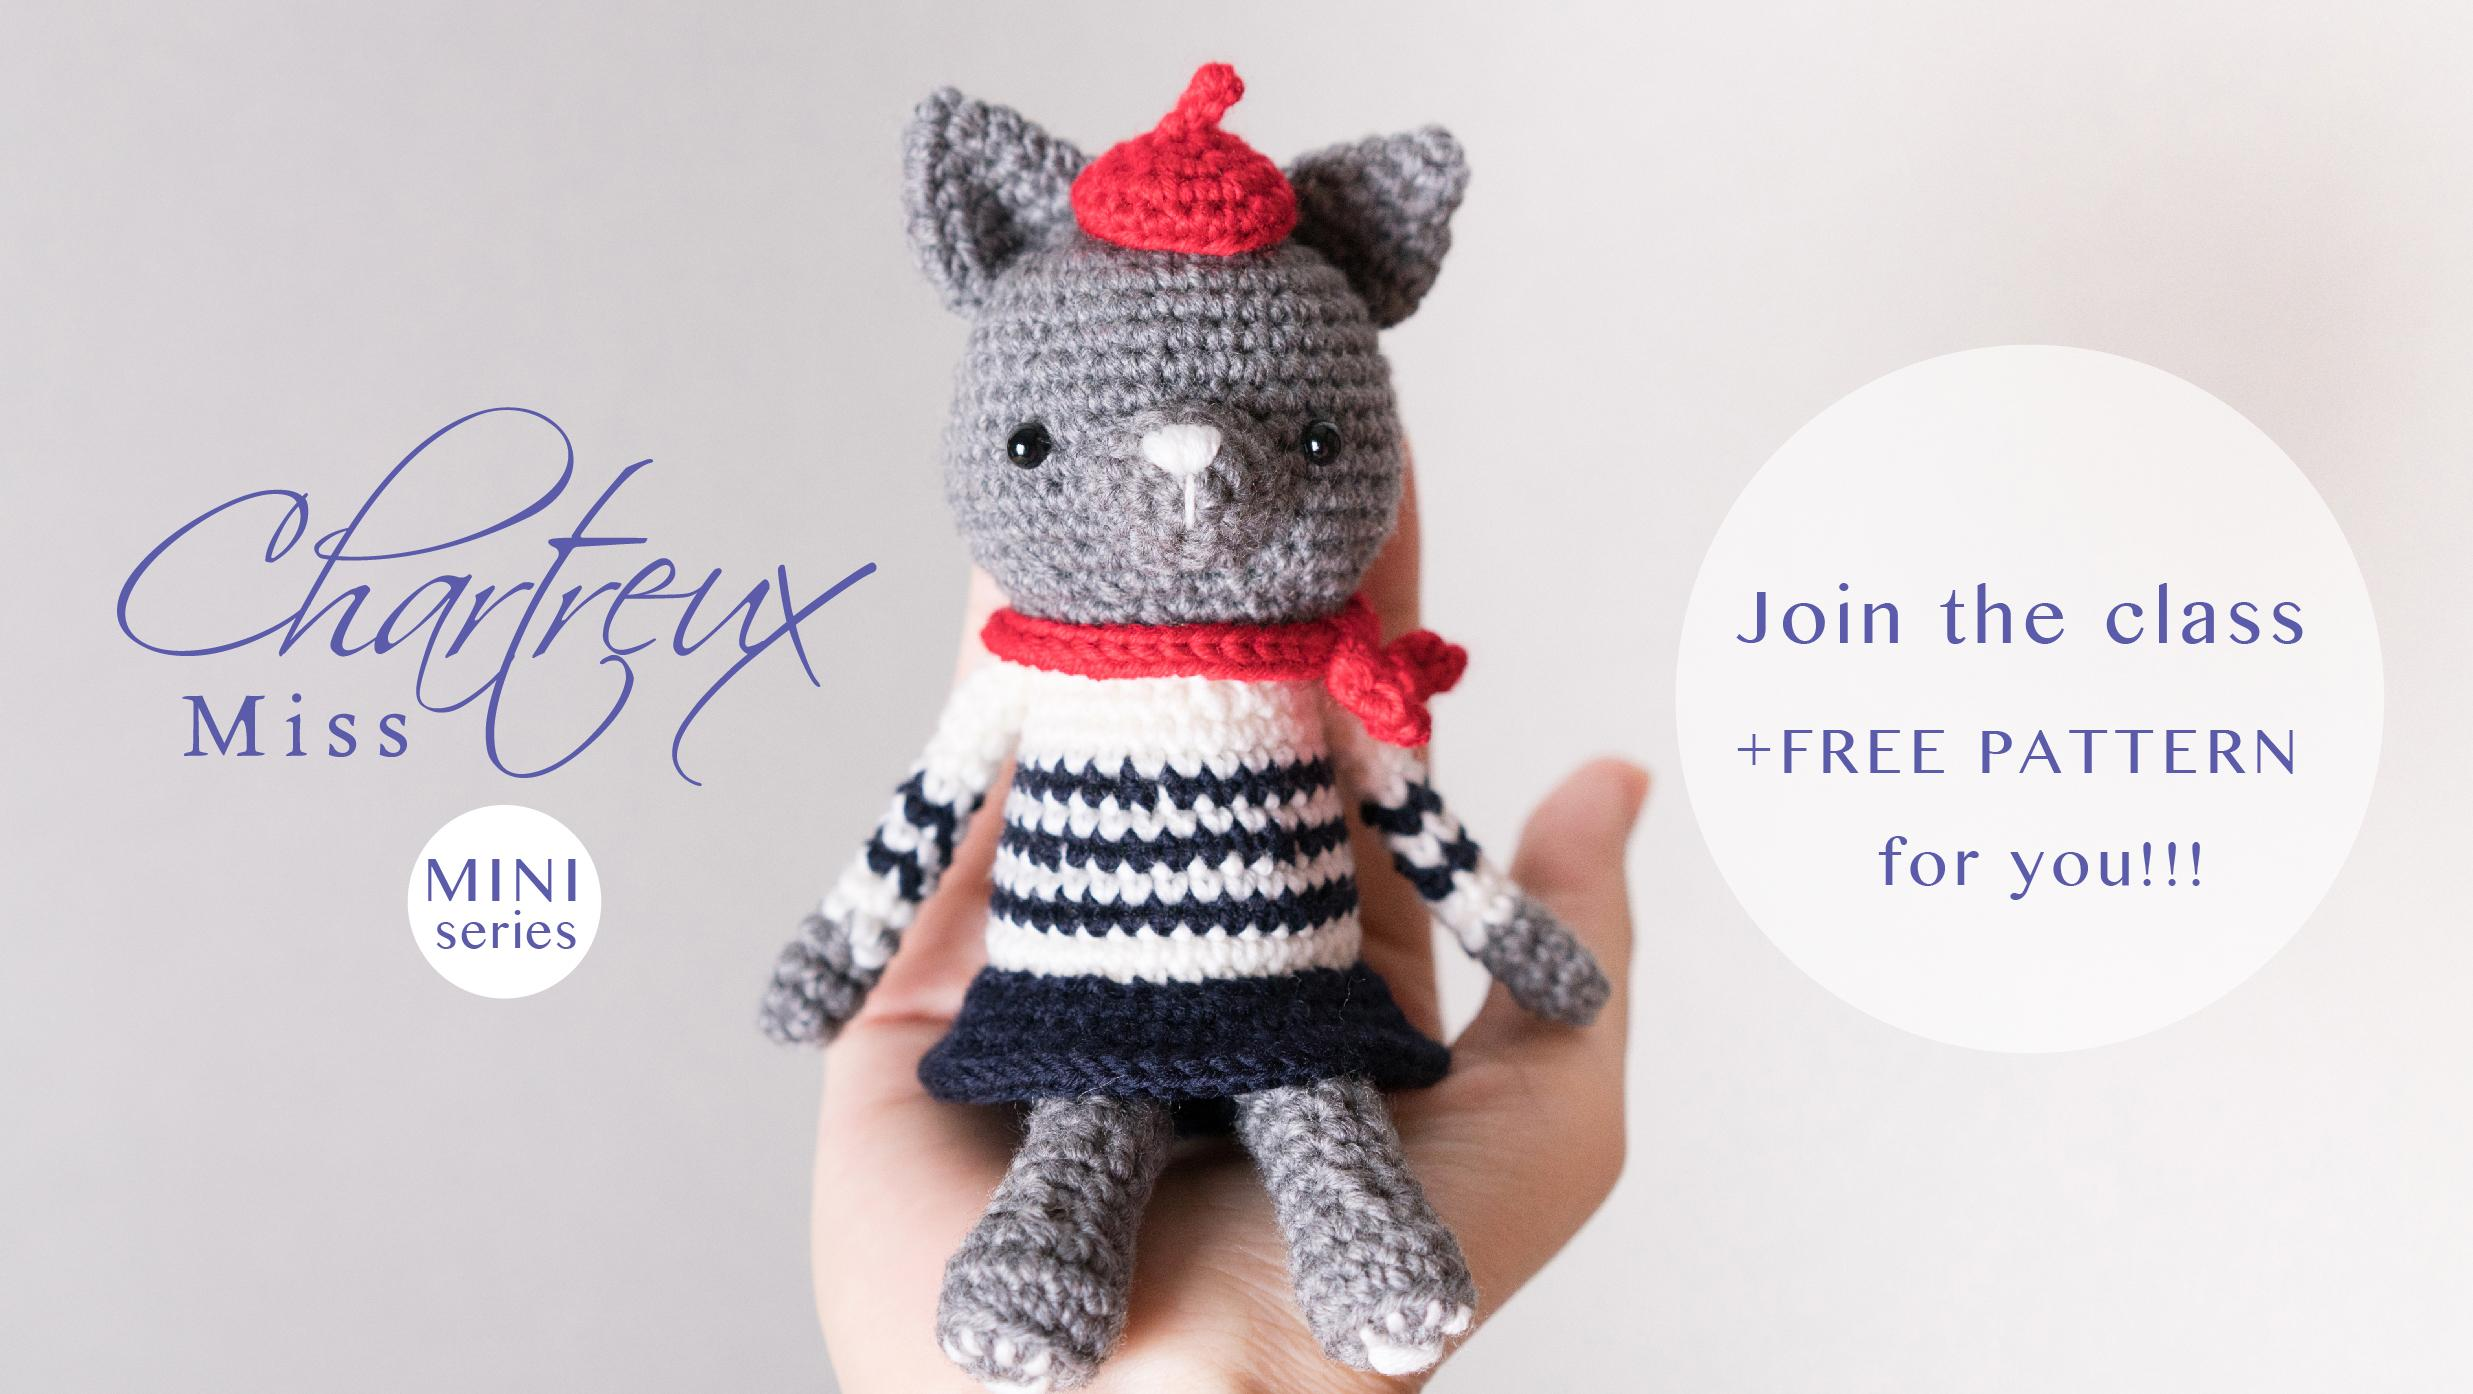 FREE PATTERN} Making Crochet Doll step by step_Miss Chartreux mini ...